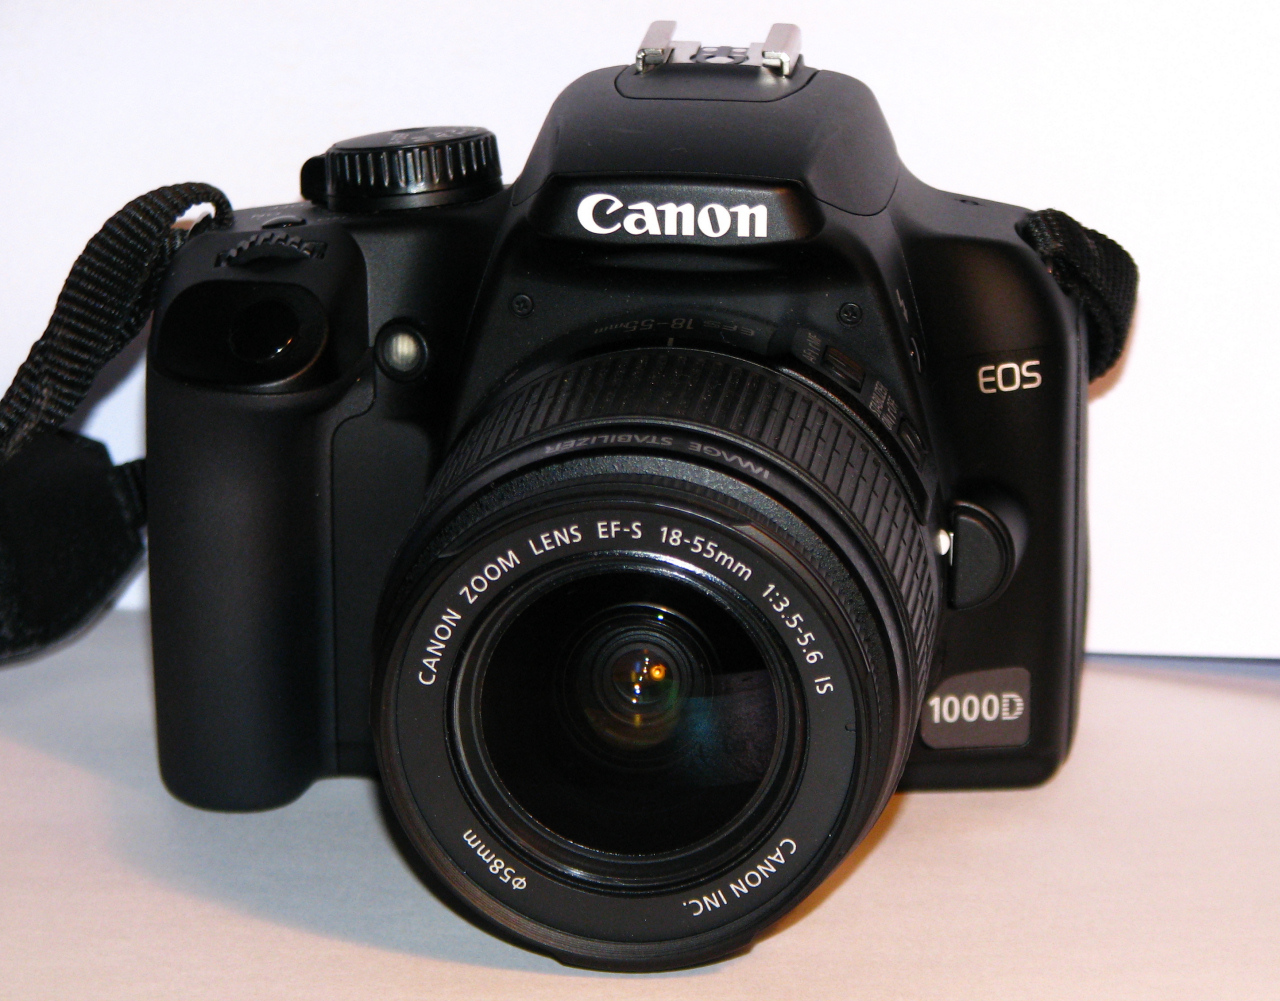 file canon eos wikimedia commons